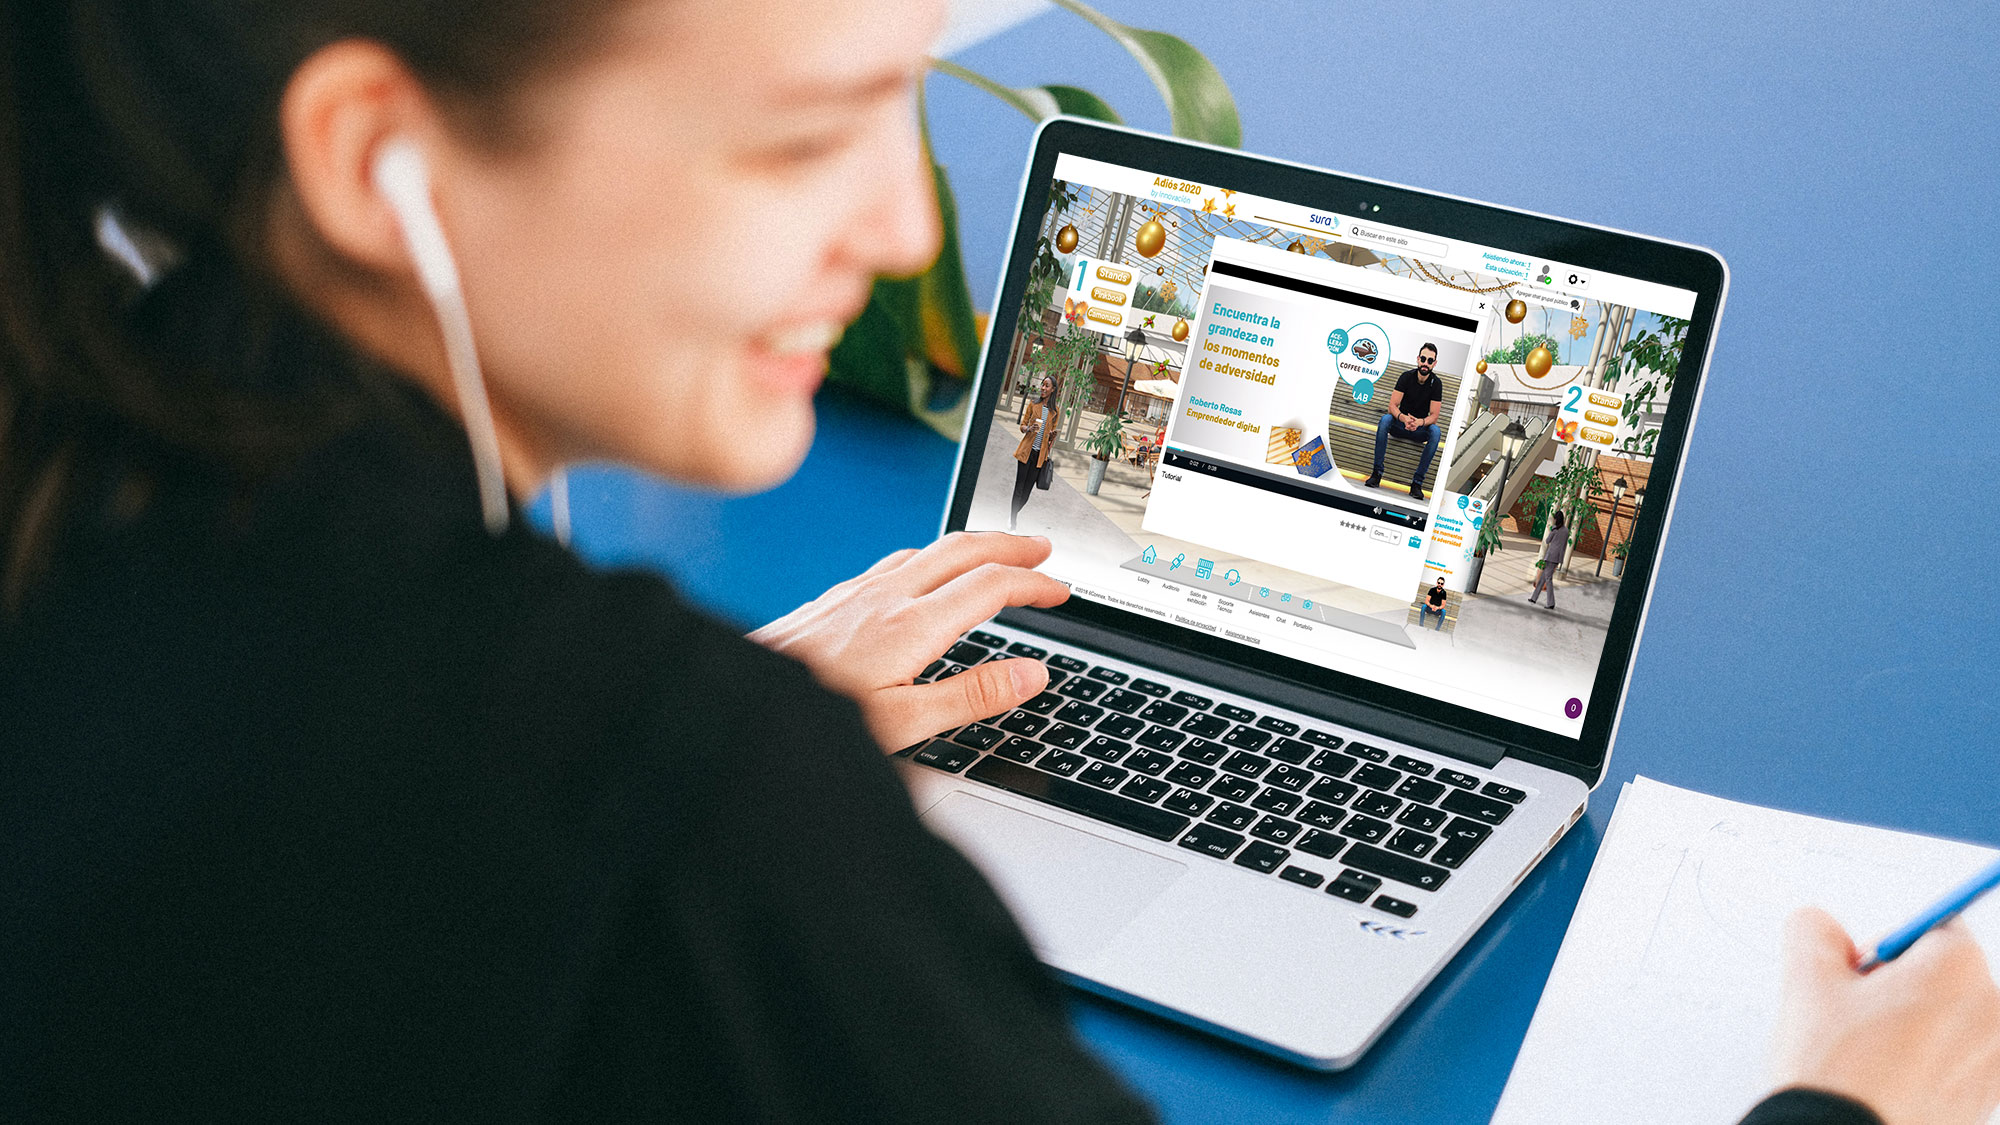 destinos case study girl on laptop at virtual event